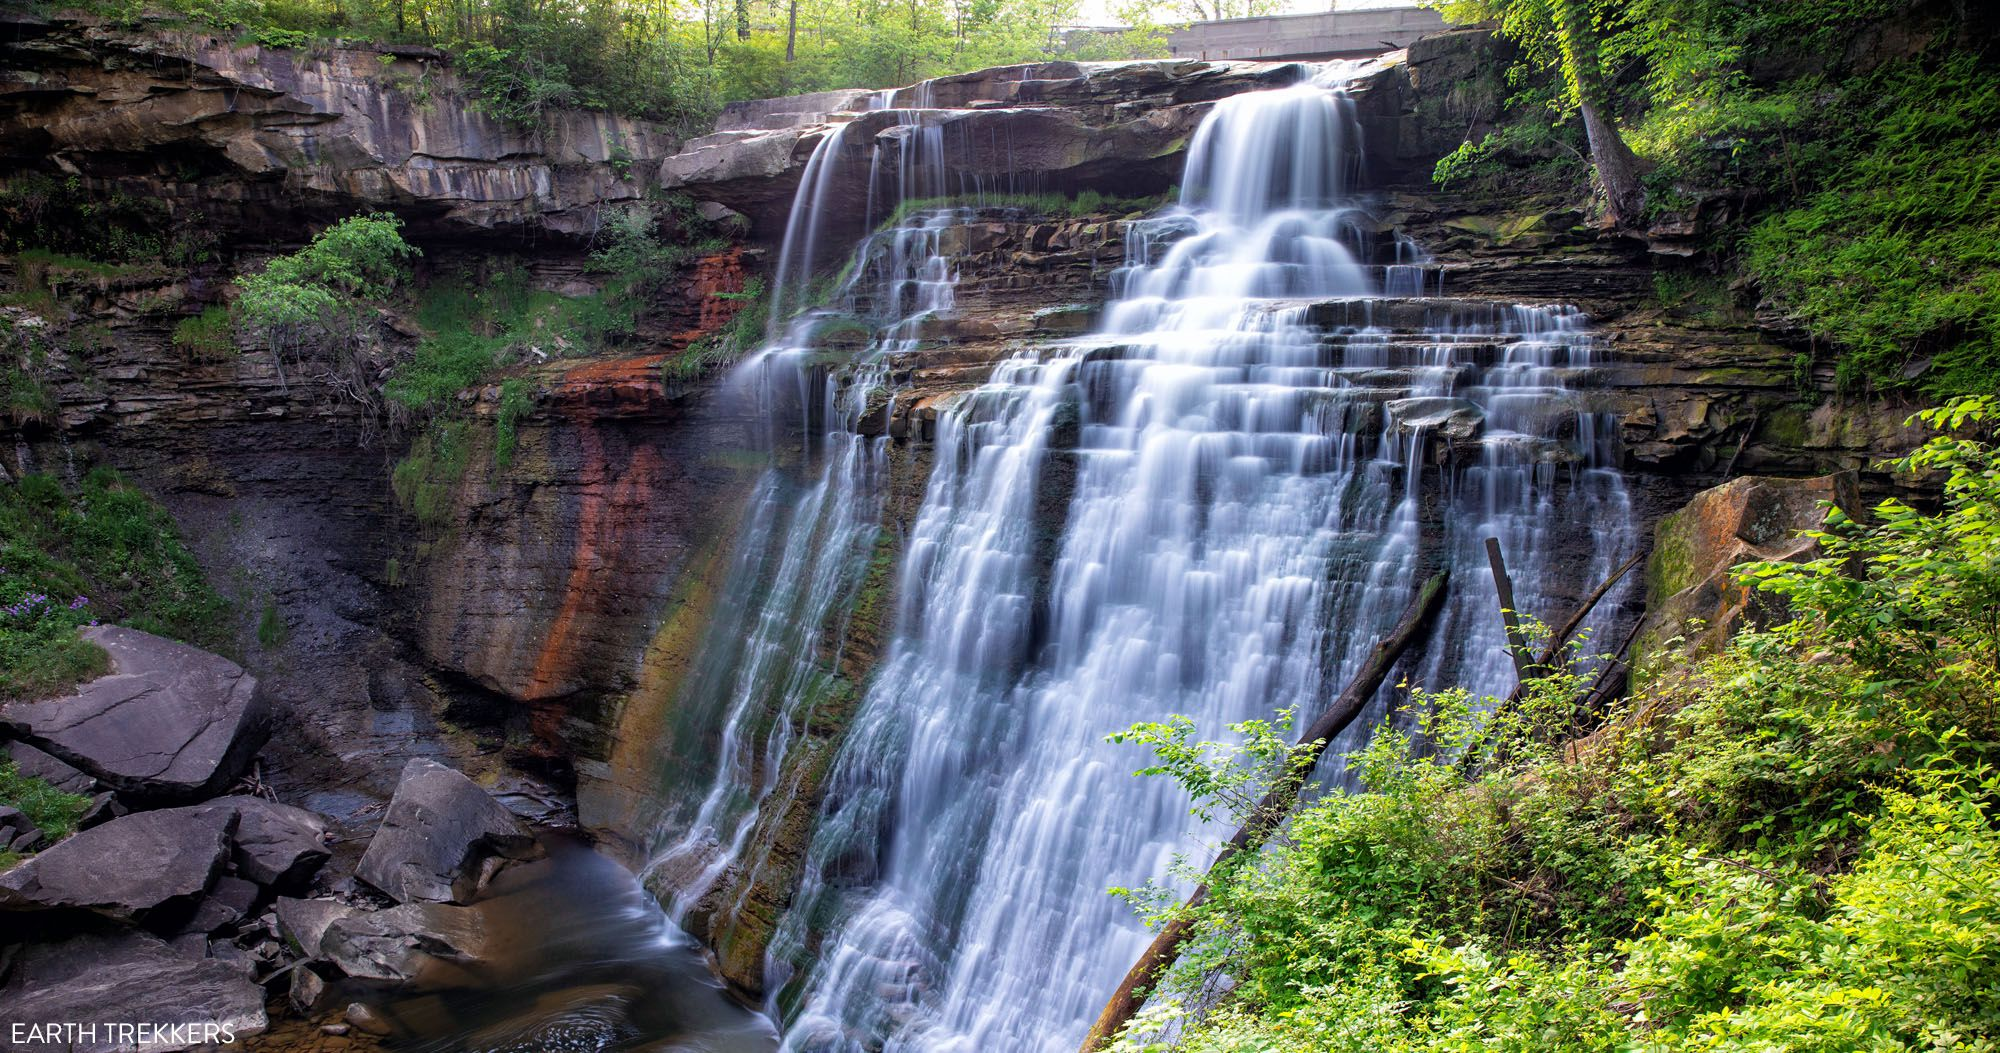 One Day in Cuyahoga Valley